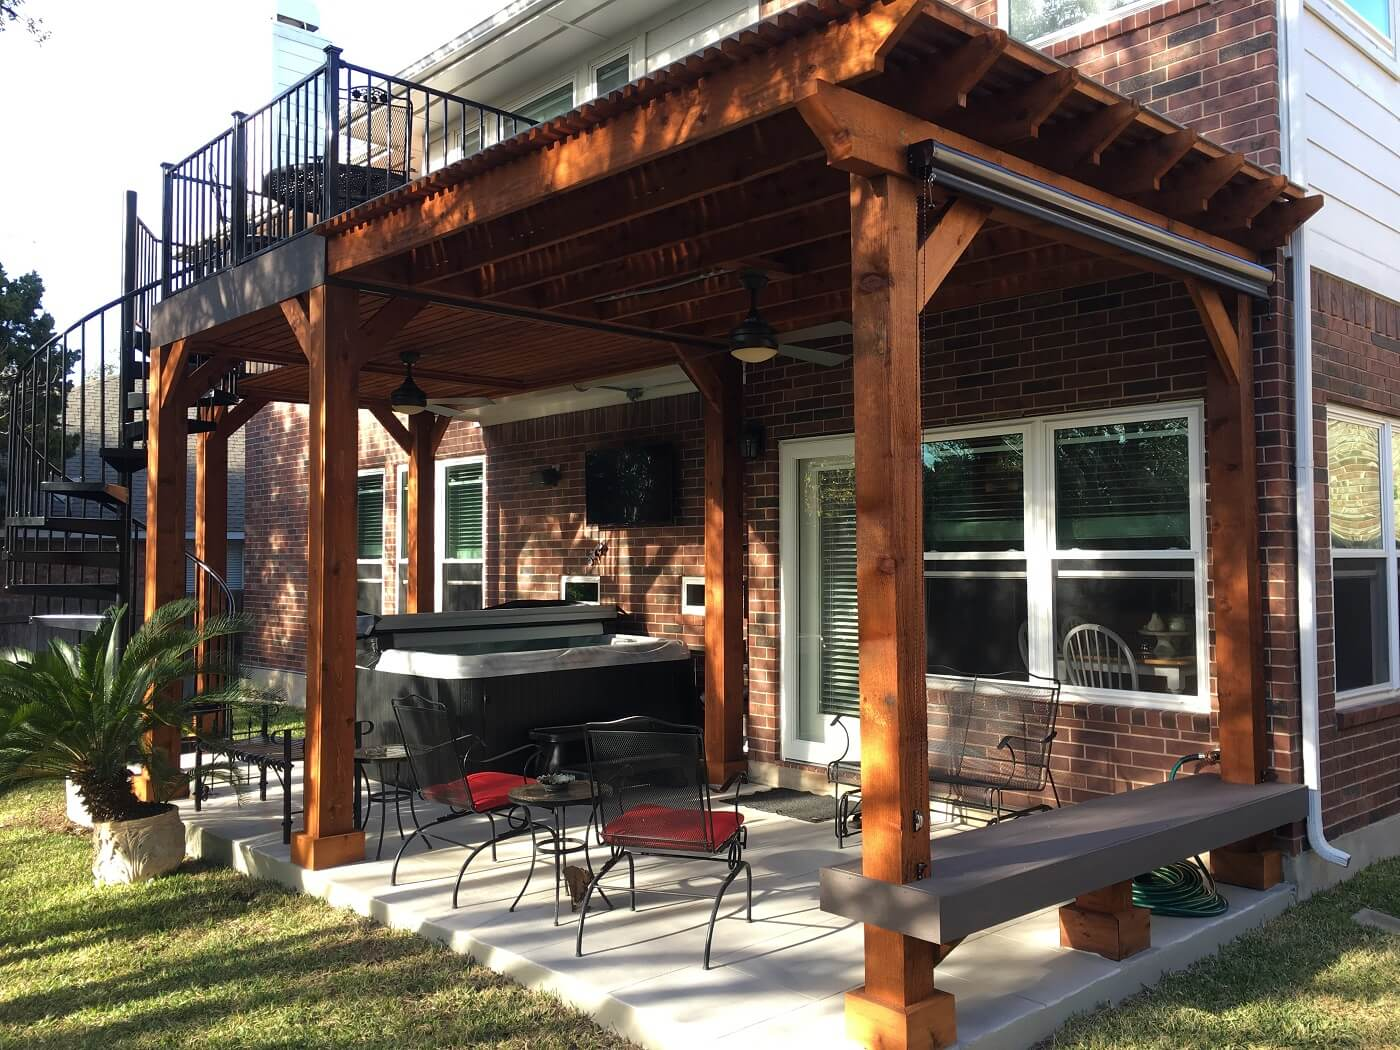 Elevated deck and patio with spiral stairs and hot tub